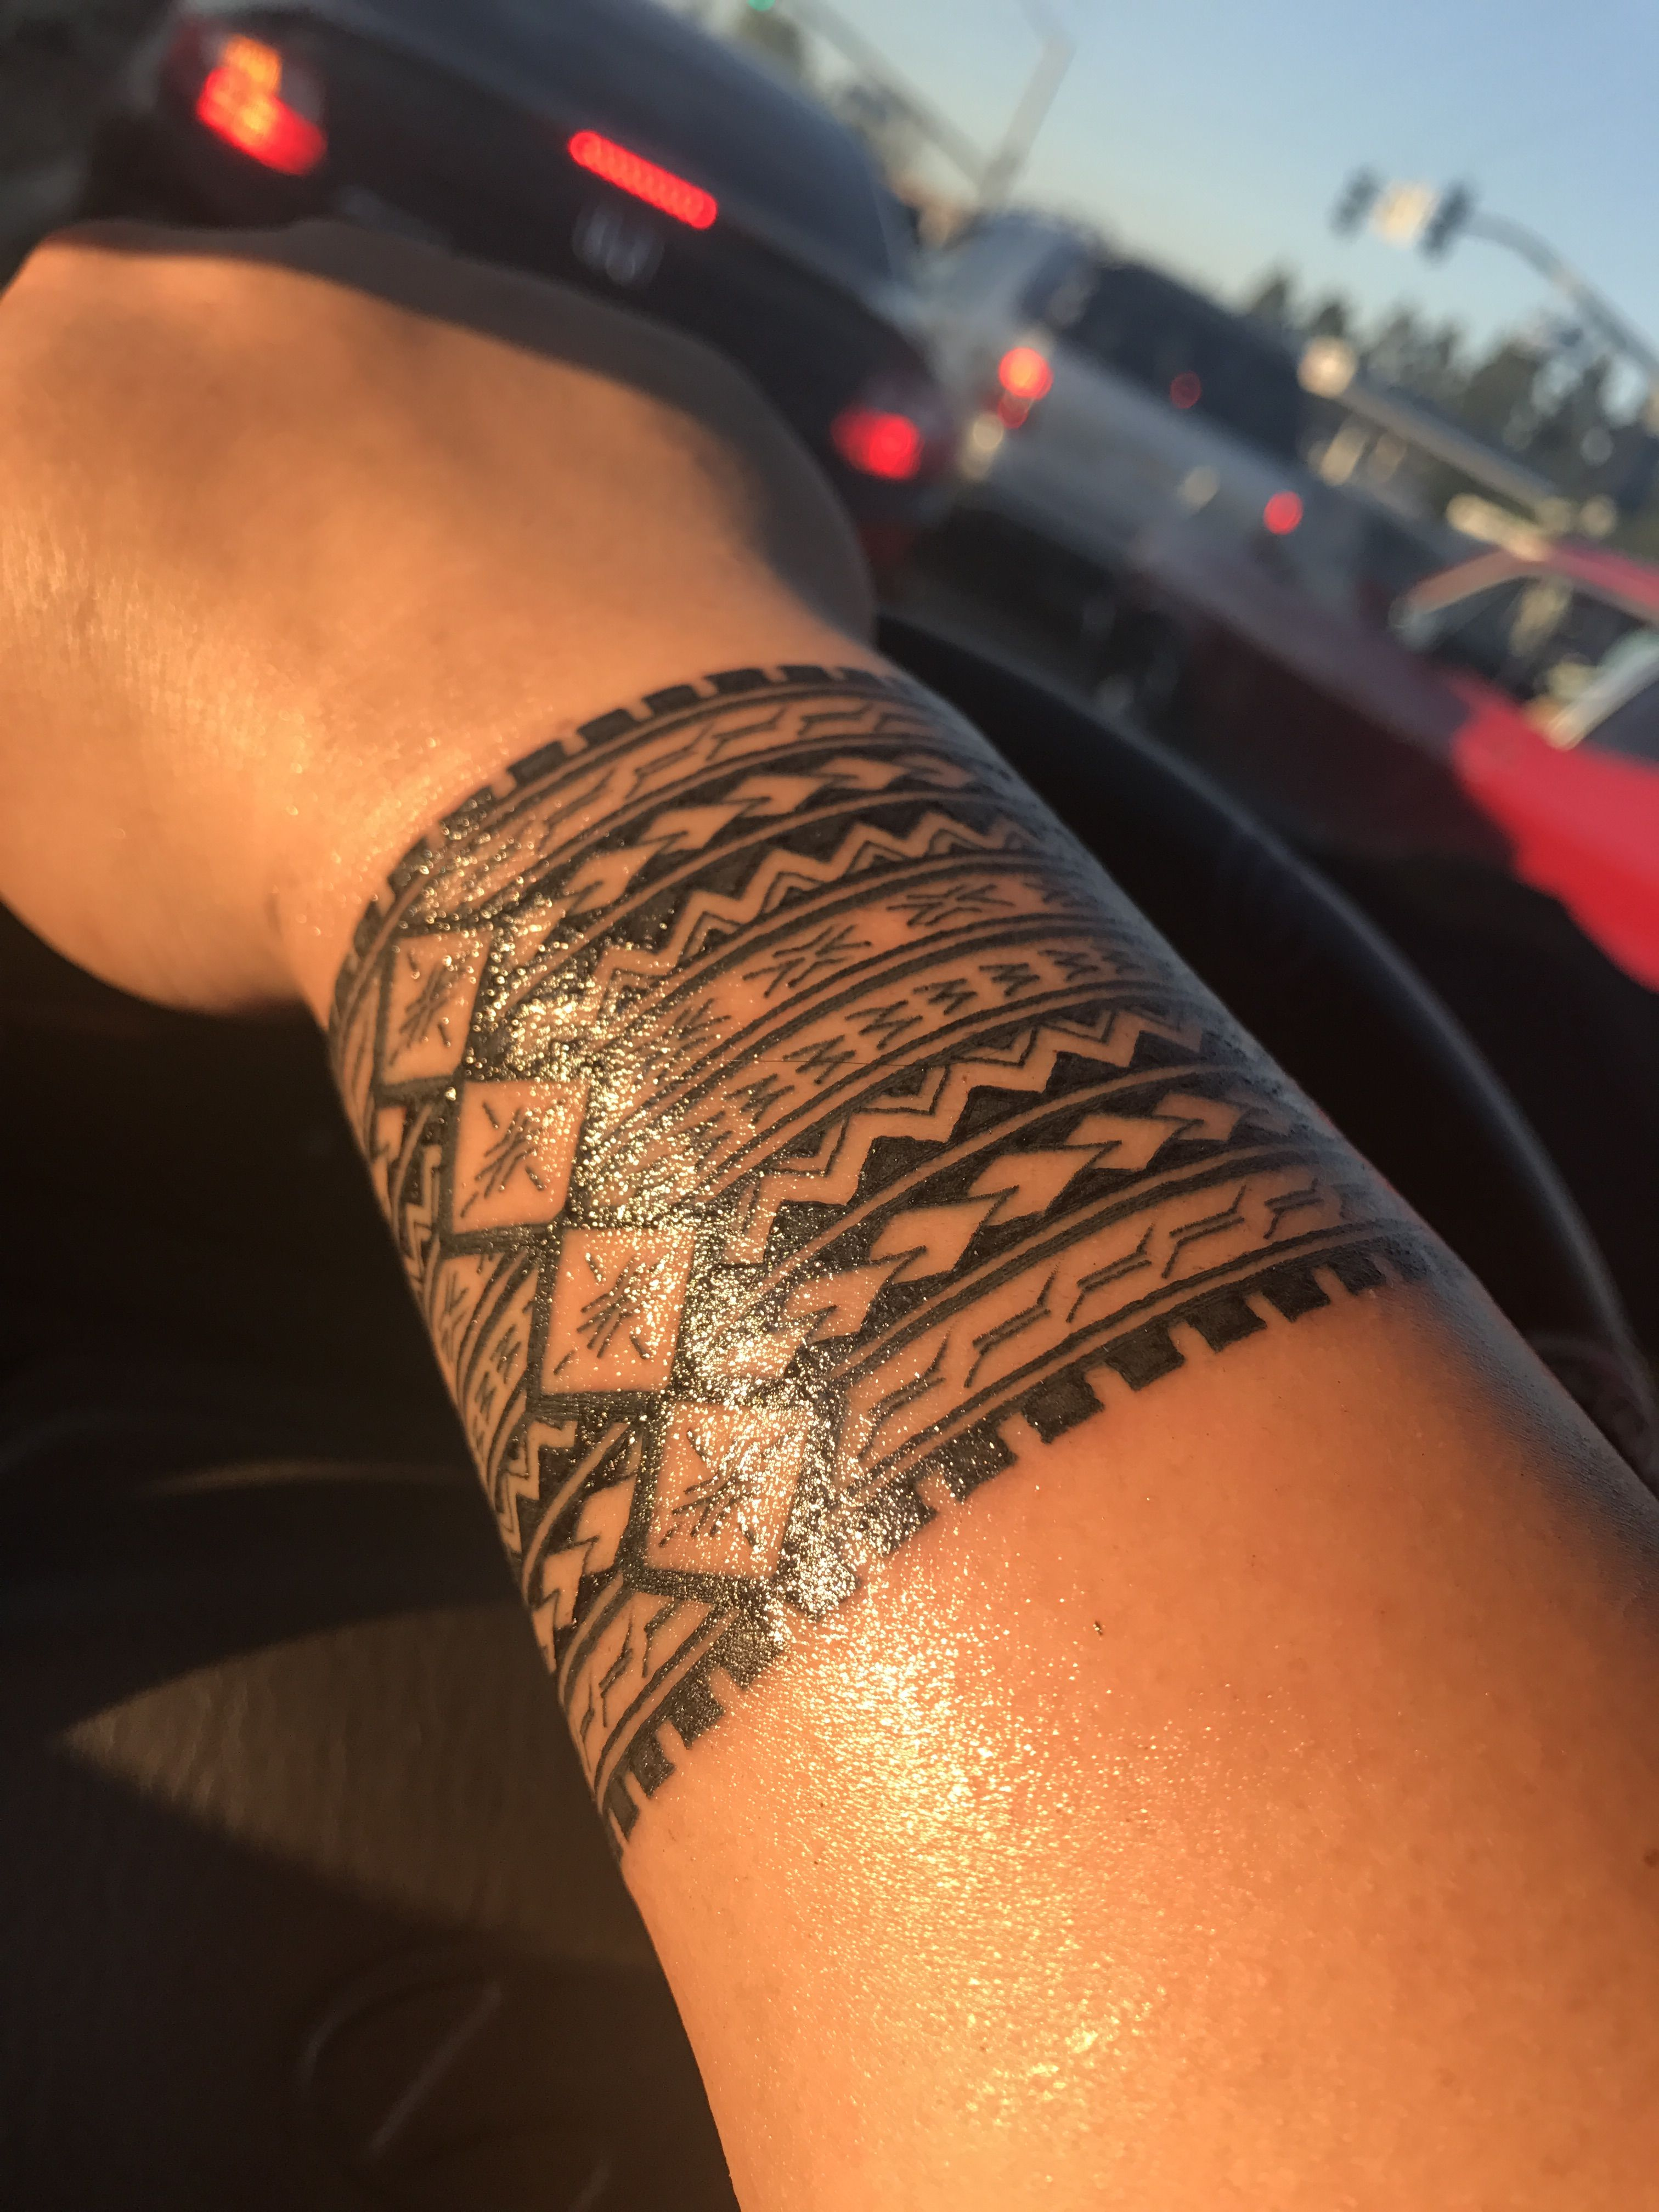 Samoan Taulima African Tribal Tattoos Samoan Tribal Tattoos Tribal Tattoos For Women